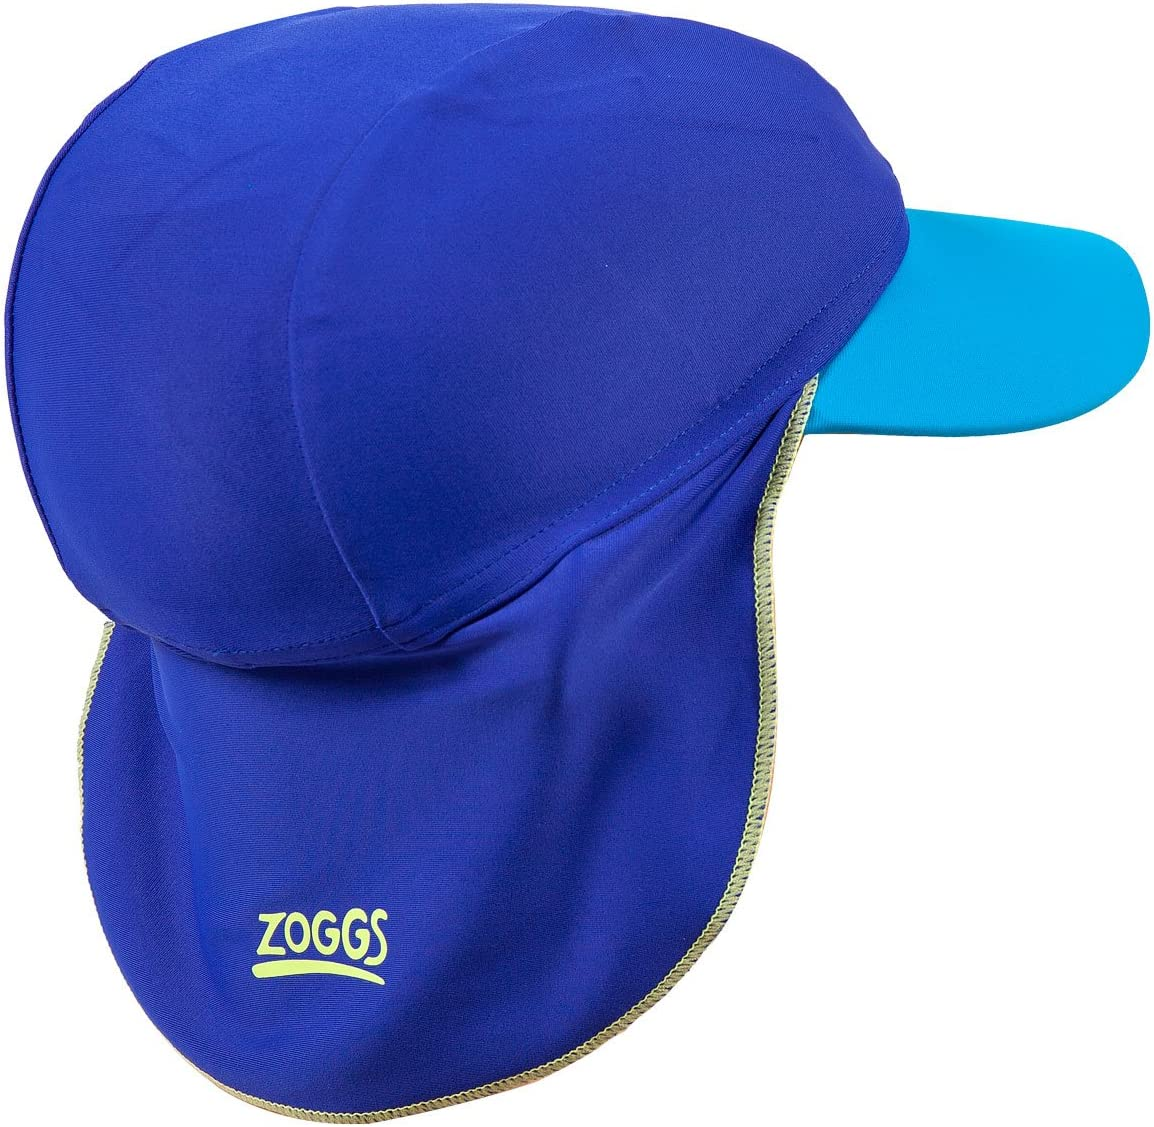 1-2 years ZOGGS Zoggy Swimmers Protection Hat Small BLUE Boys Blue /& Light Blue